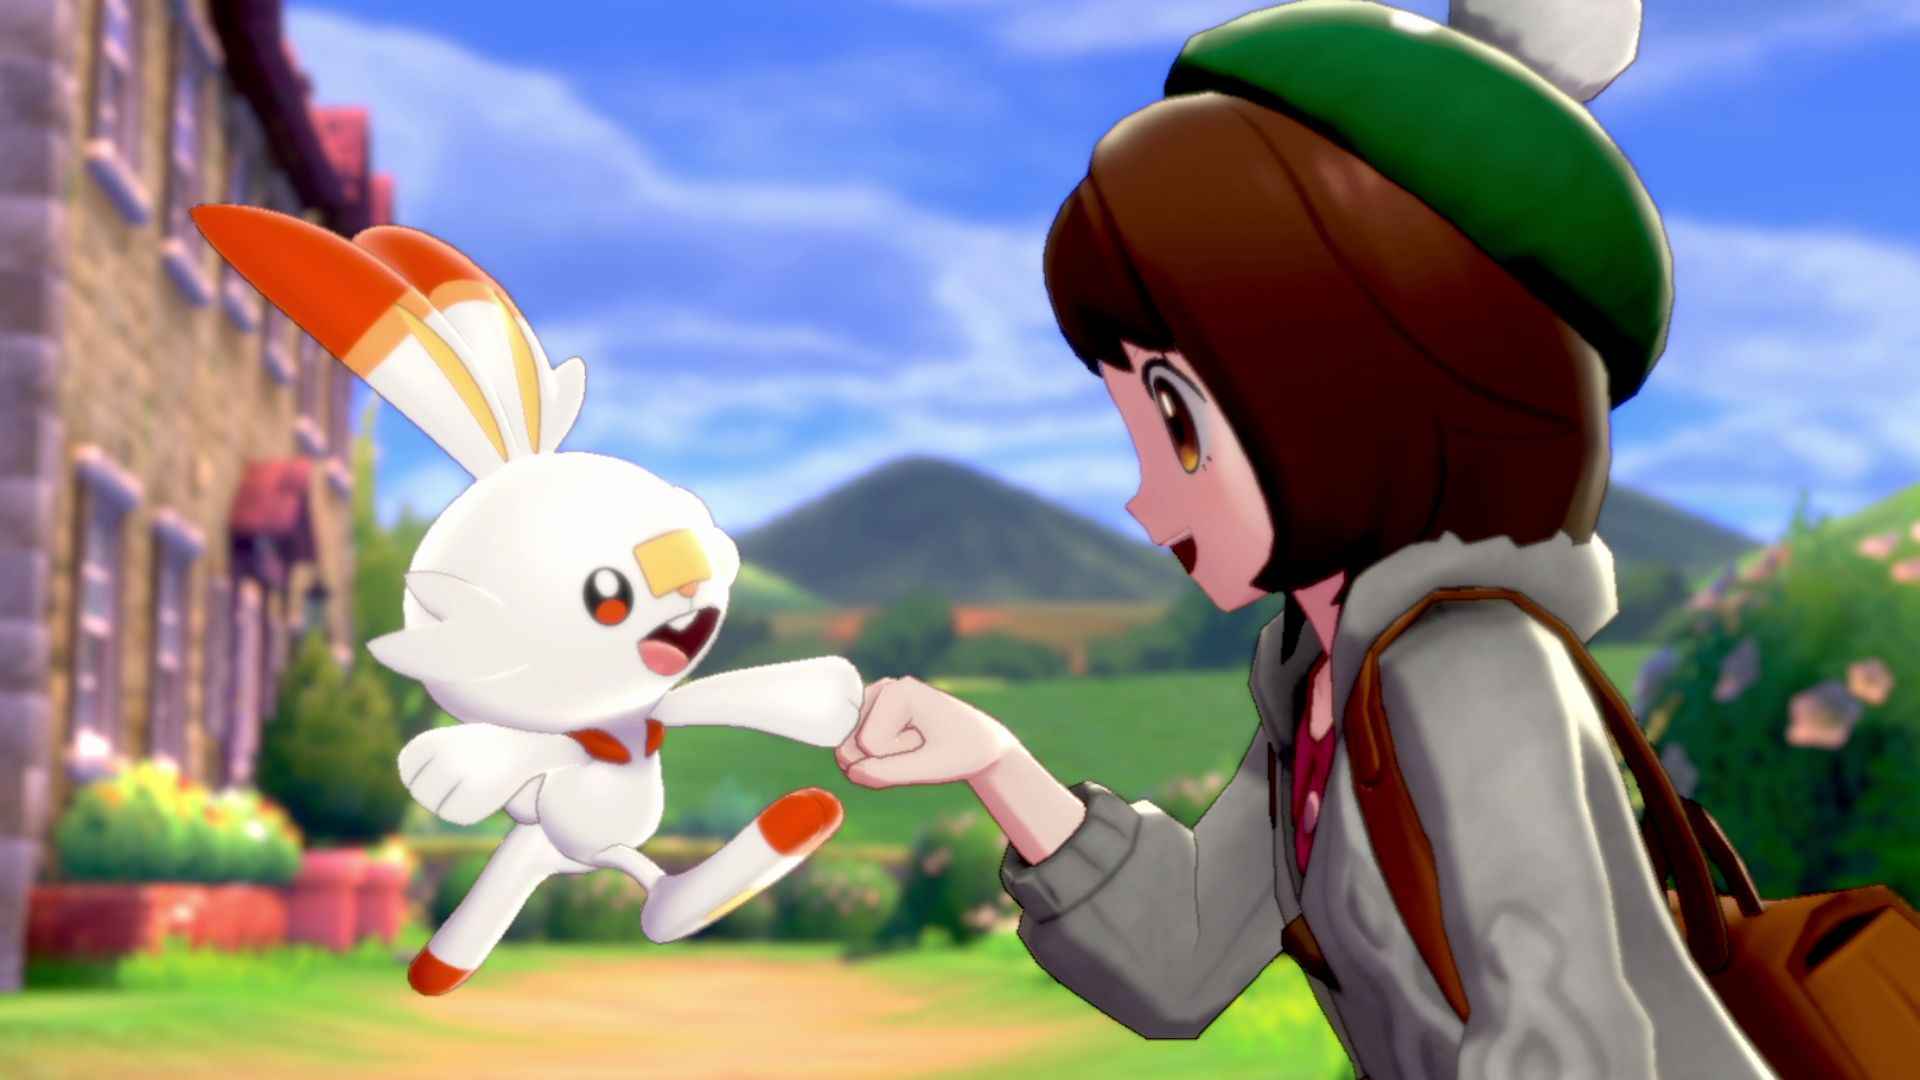 Dataminer: Pokemon Sword/Shield Starters And Legendaries Shiny Colors Discovered